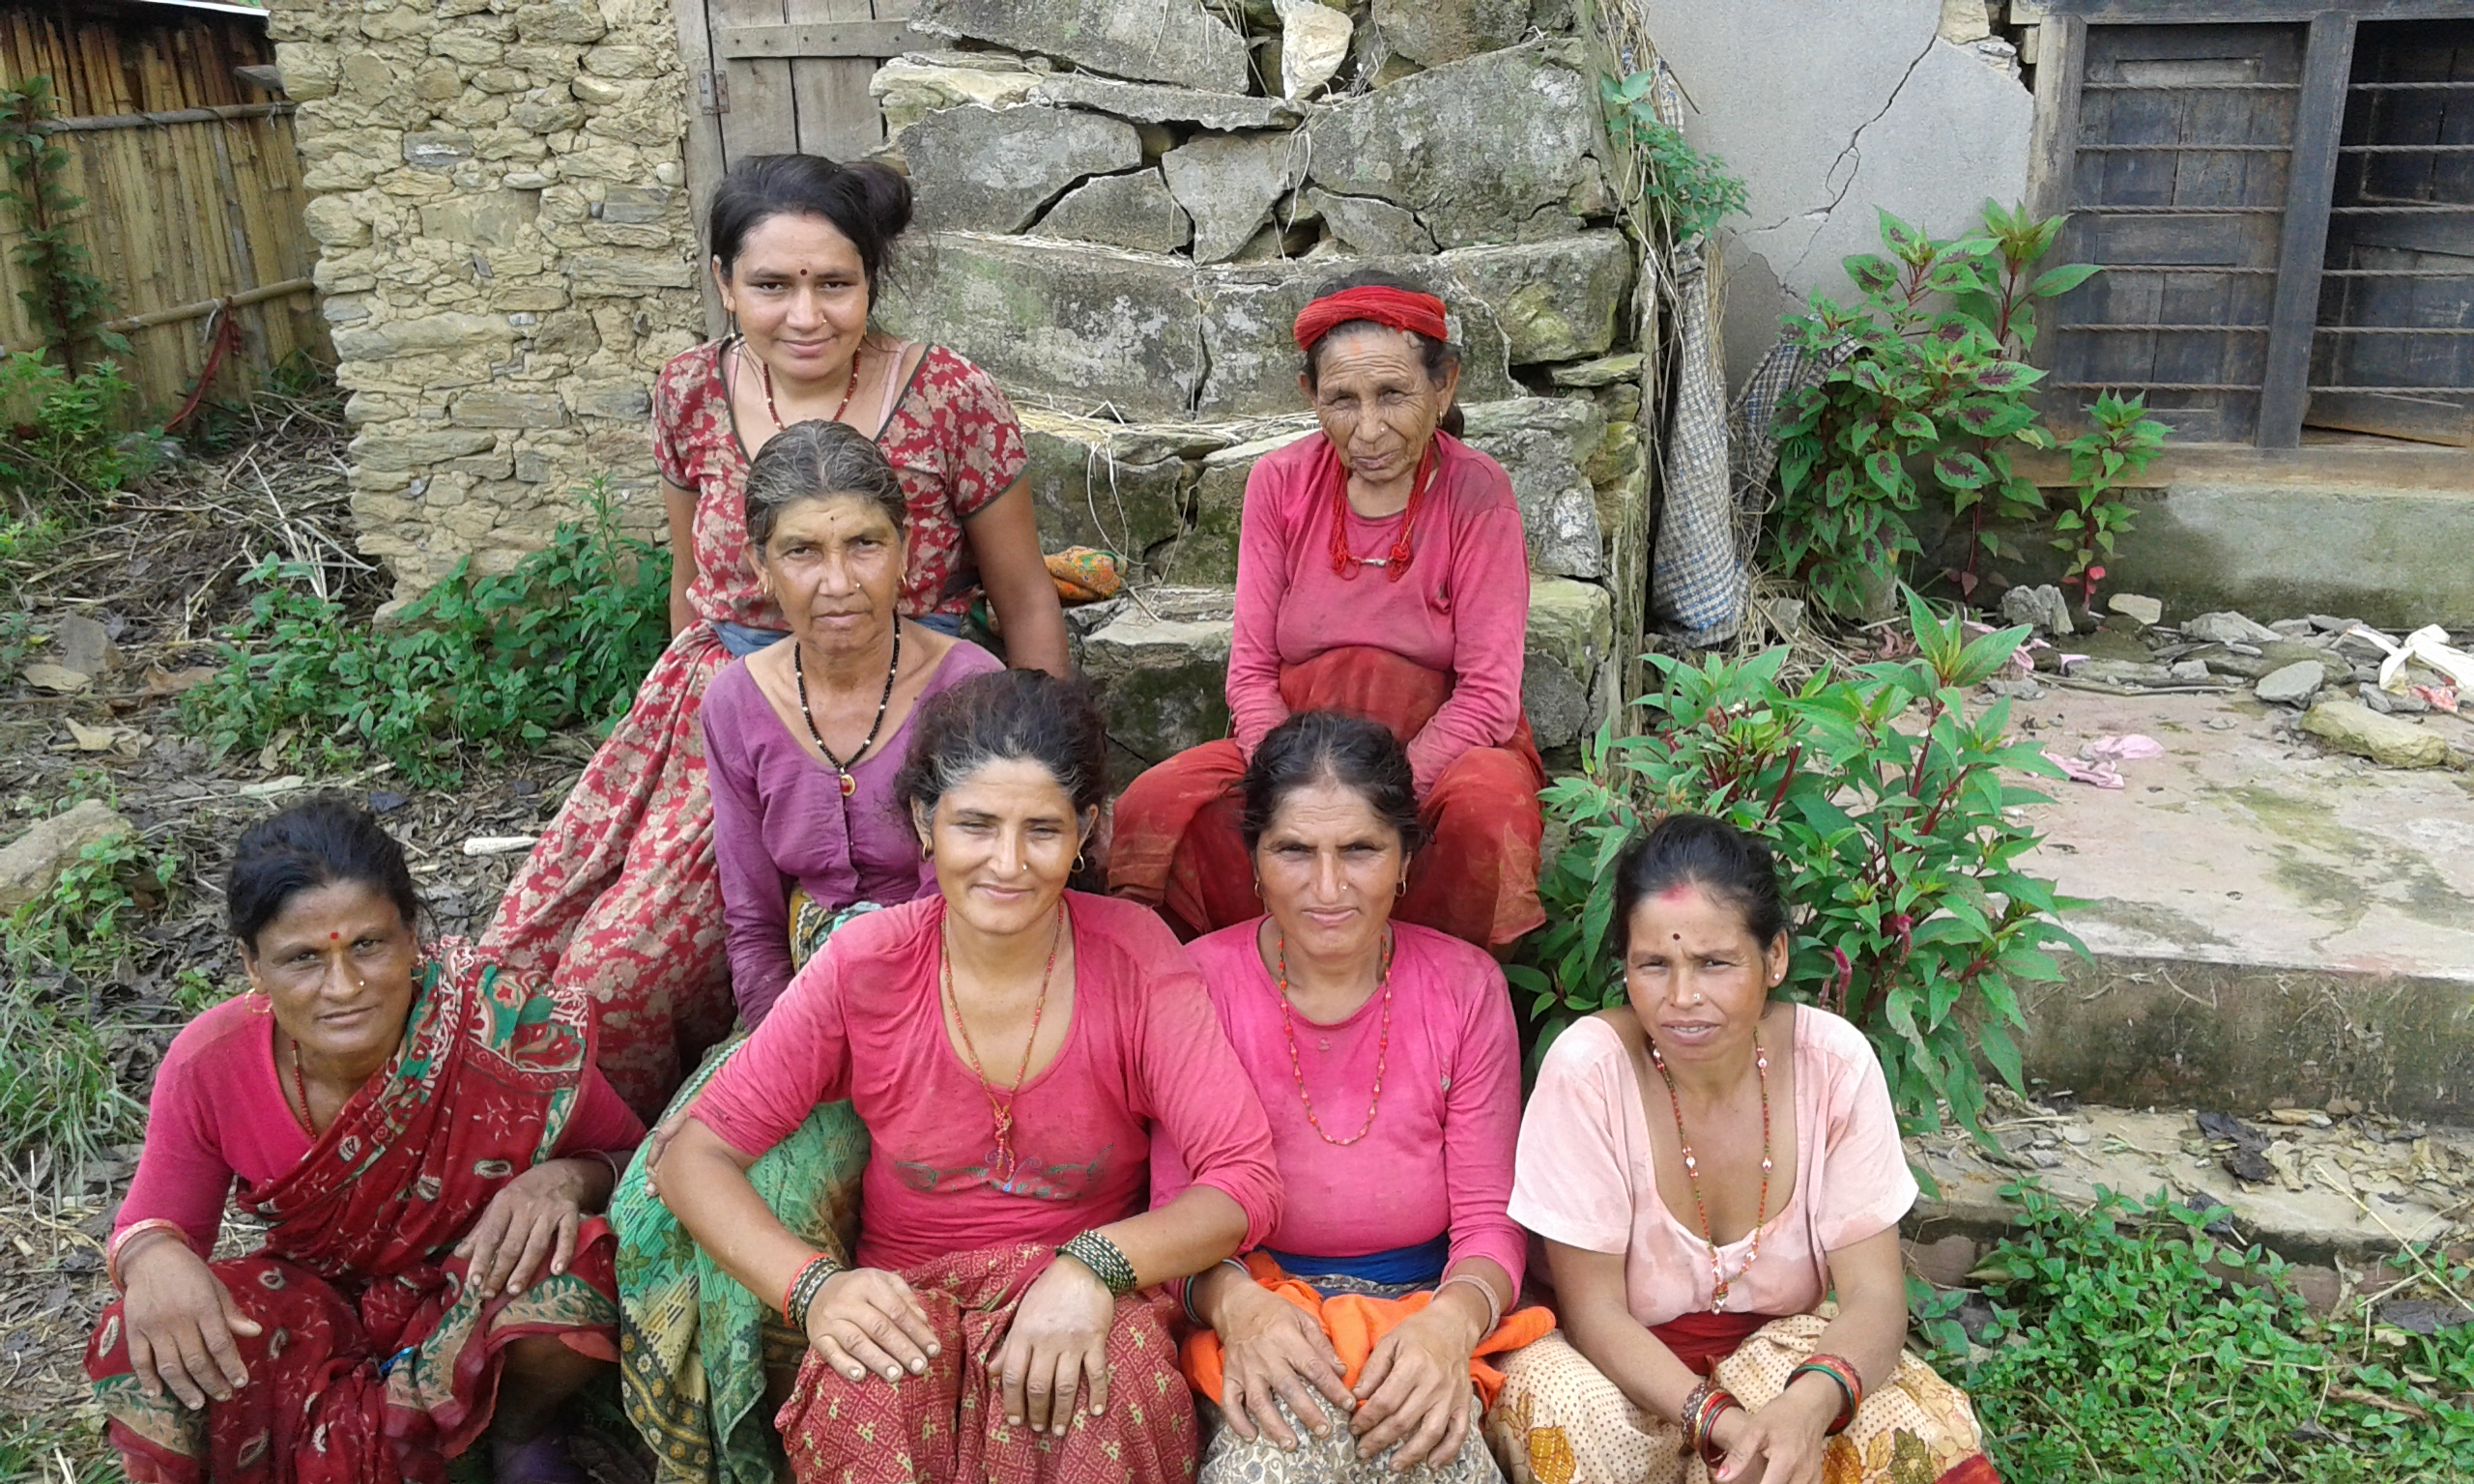 nepal singles Nepal tours until recently a kingdom, the republic of nepal lies sandwiched between the largest democracy in the world (india) and the oldest civilisation in the world (china)  a visit.